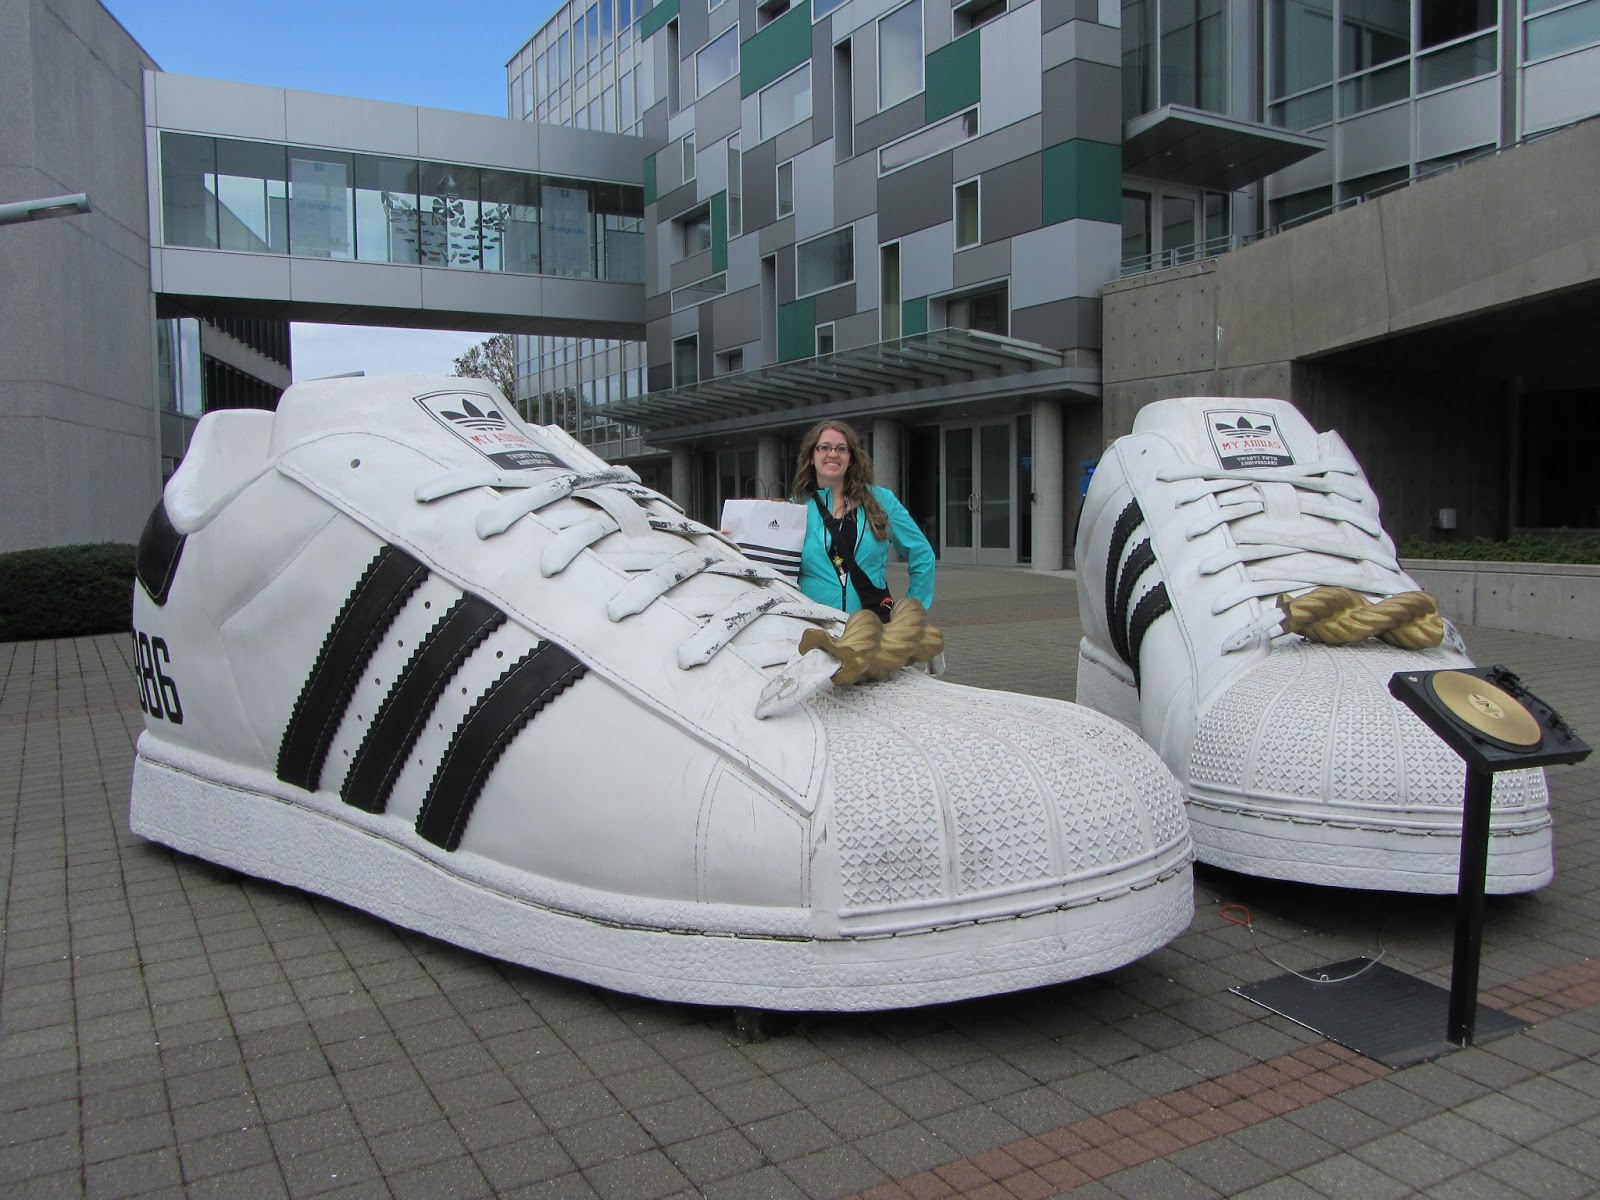 jd nat speth family adidas employee store my work provides an employee store pass each to get into the adidas and columbia employee stores they used to do nike as well but not anymore